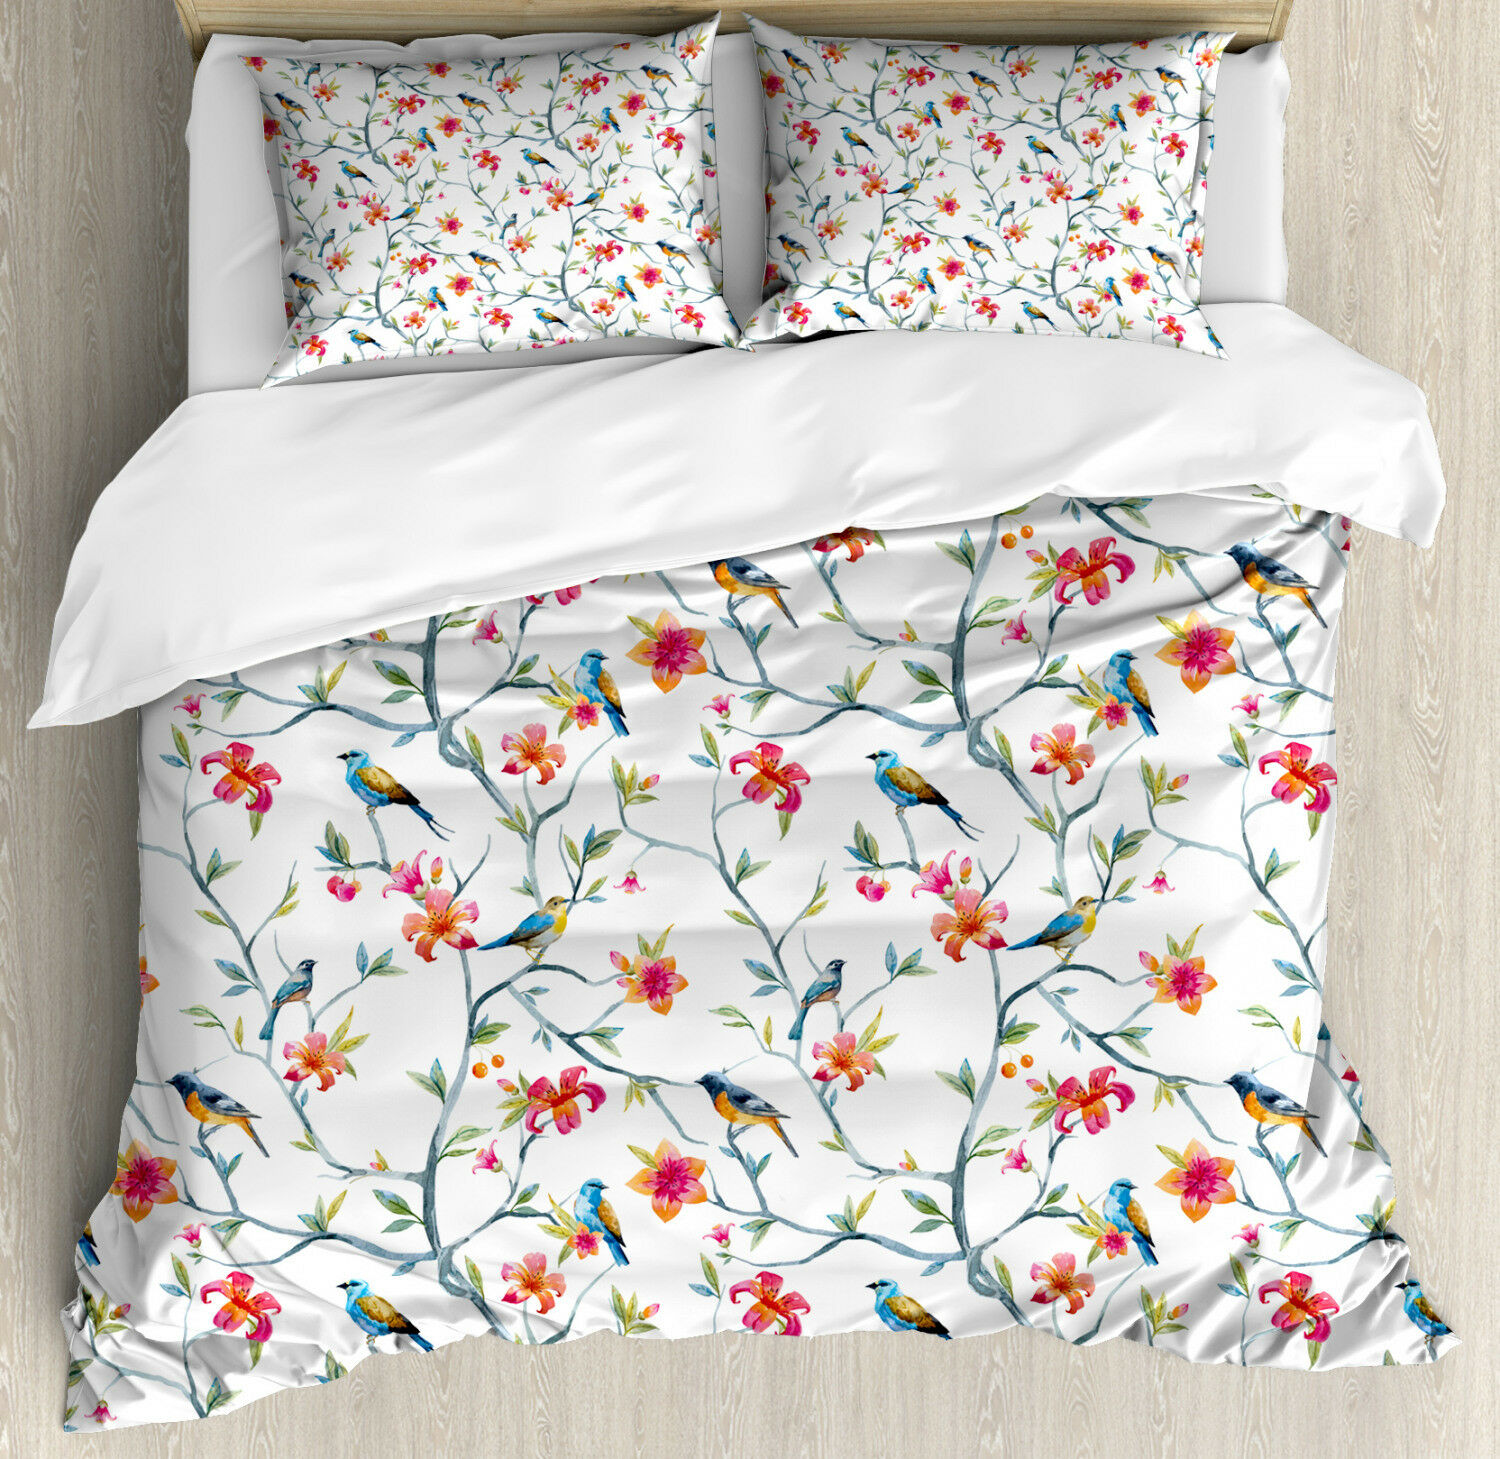 Watercolor Duvet Cover Set with Pillow Shams Birds on Branches Print